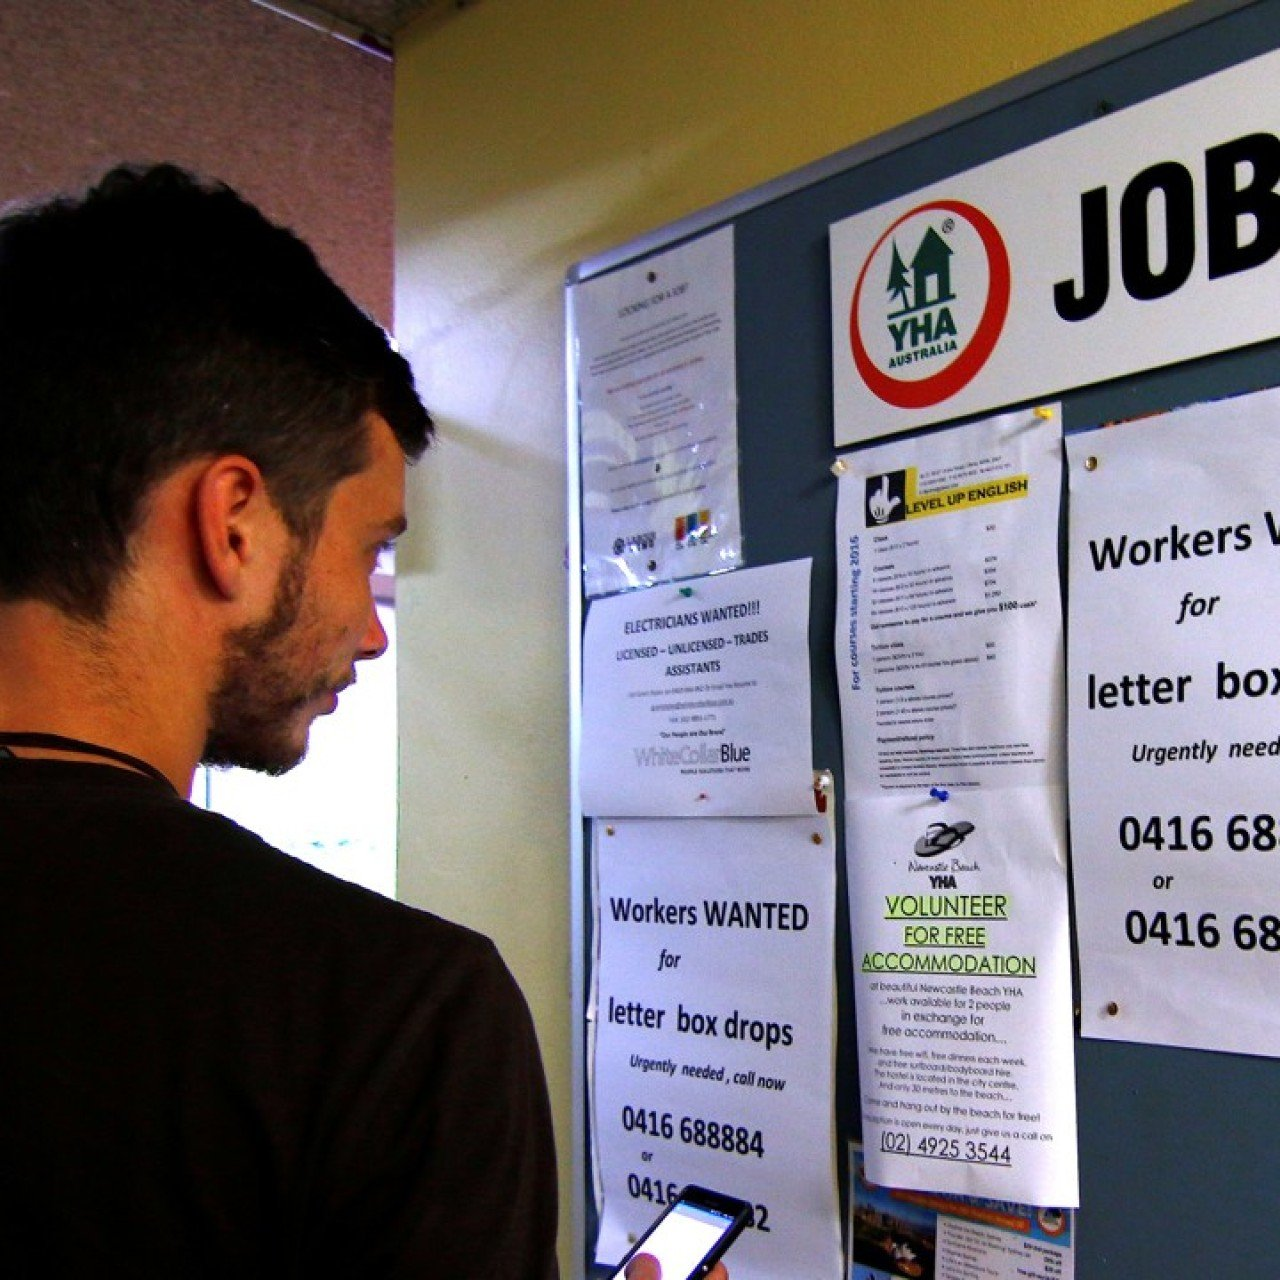 Wage-theft ripping off a third of foreign workers, backpackers in